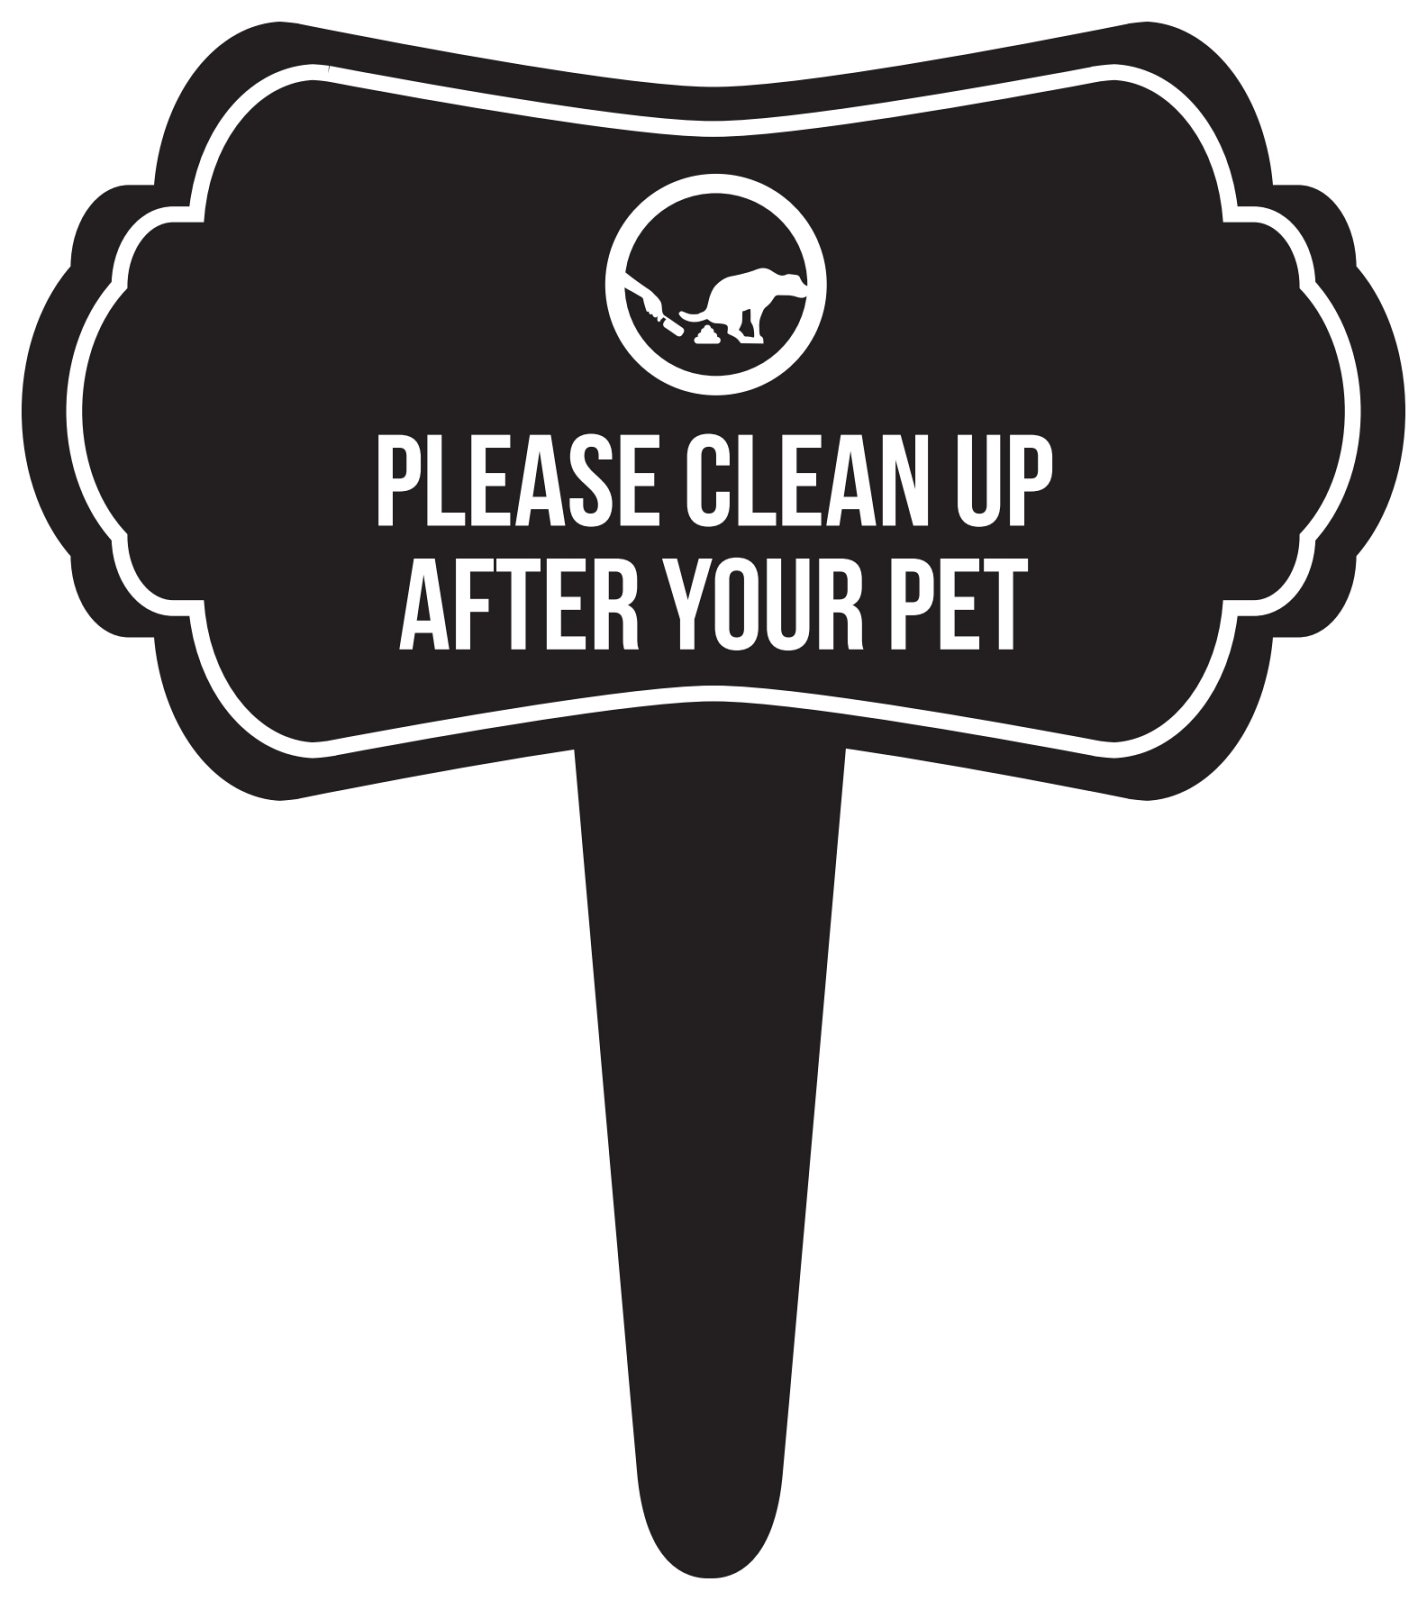 iCandy Combat Please Clean Up After Your Pet Home Yard Lawn Sign, Black, 16x18, Single